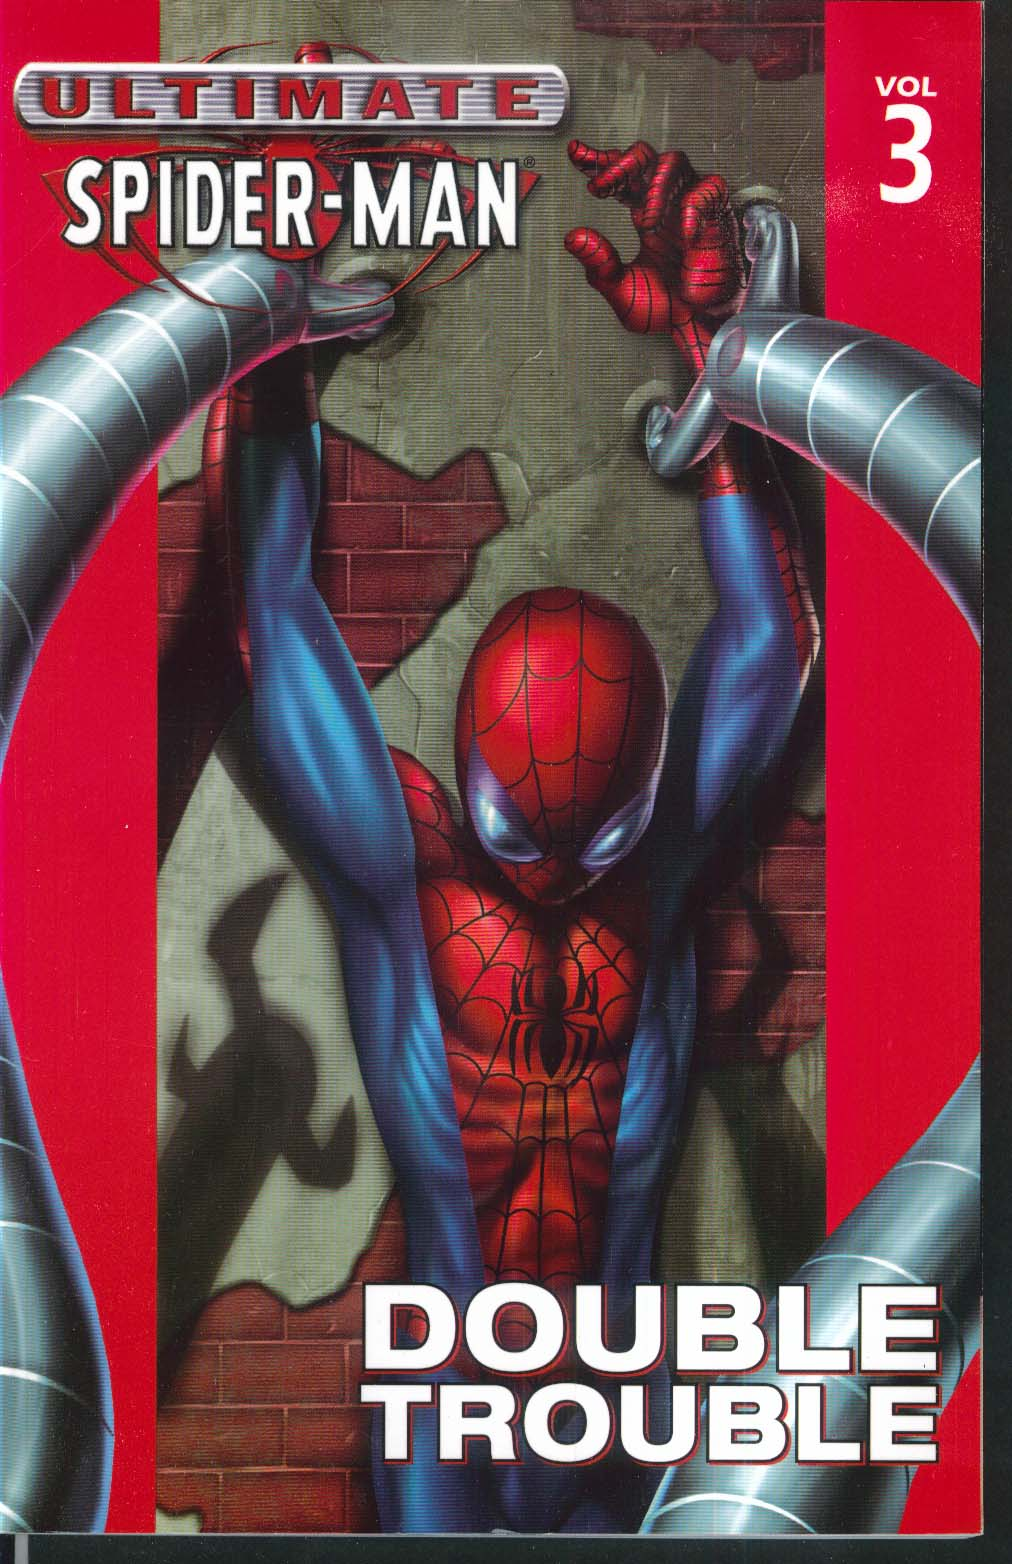 ULTIMATE SPIDER-MAN Vol 3 Double Trouble Marvel Graphic Novel 4th Printing 2004